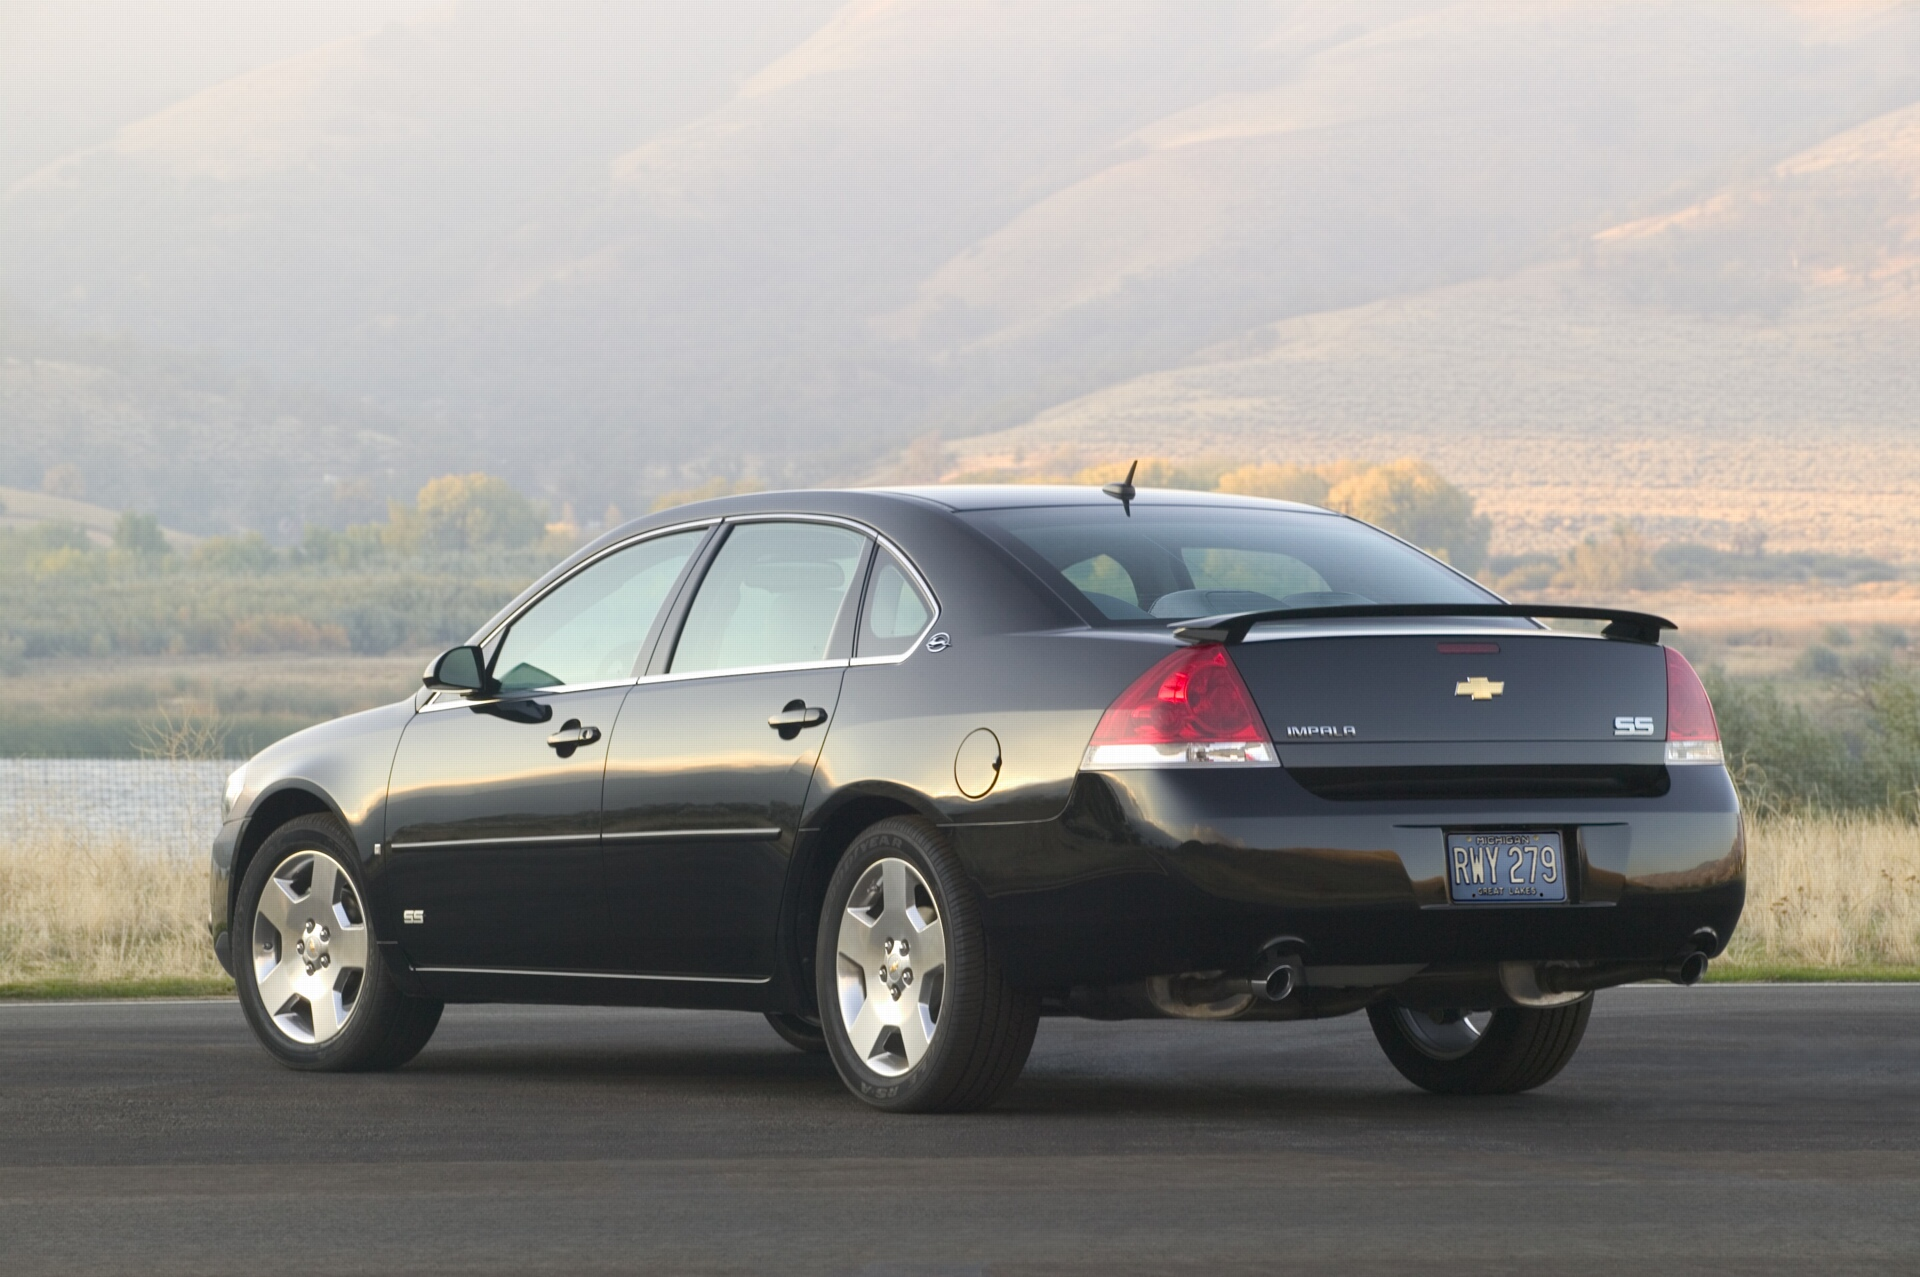 2008 Chevrolet Impala News And Information Conceptcarz Com